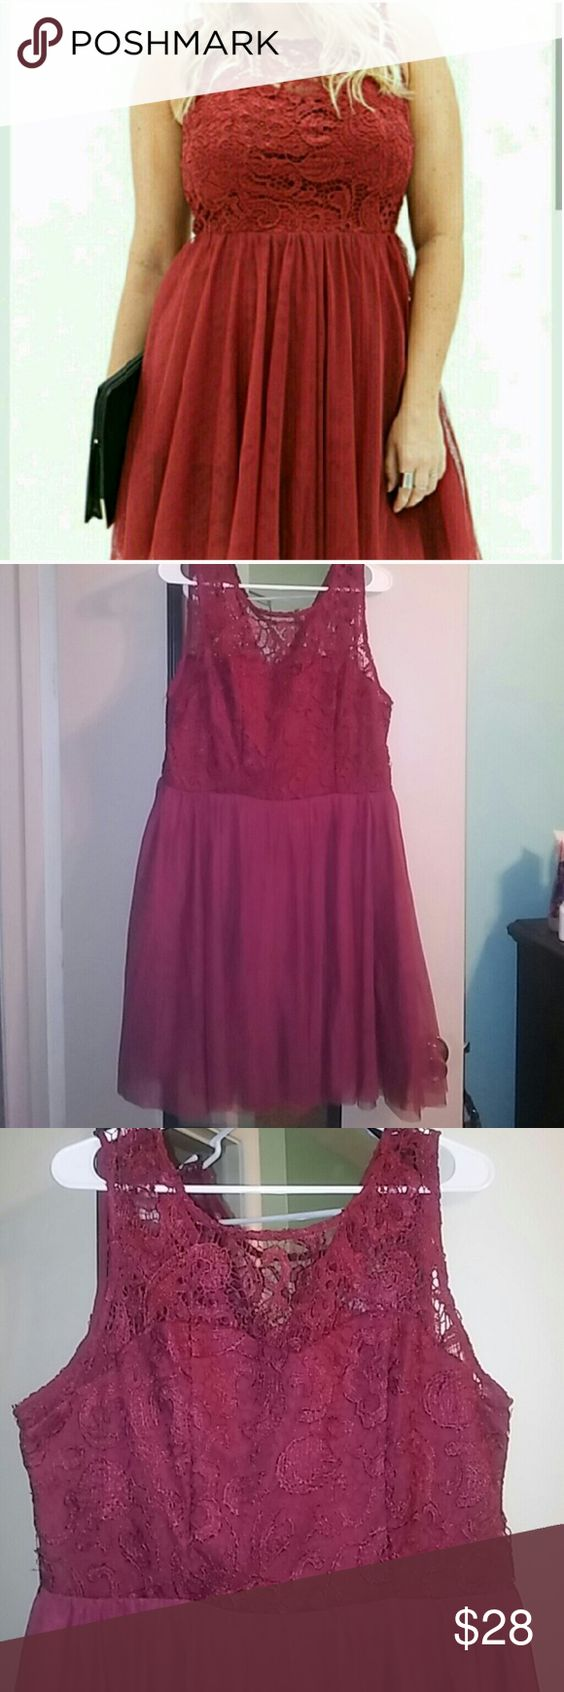 Forever 21 Rust Red colored lace dress Forever 21 Rusty Red color lace/sheer dress. Adorable baby doll design and a V back with a gold zipper. Like new condition!! There is not much stretch to this dress and I would say it runs small in the bust area. I am a 45 inch bust and wear a 38/40 D/DD and it was too tight to zip. Has a side zipper. I would say this would fit a size 36 or lower bust and maybe a Size 12. Size 1X but F21 is smaller running and I would say more Large or XL.  Ask if any…